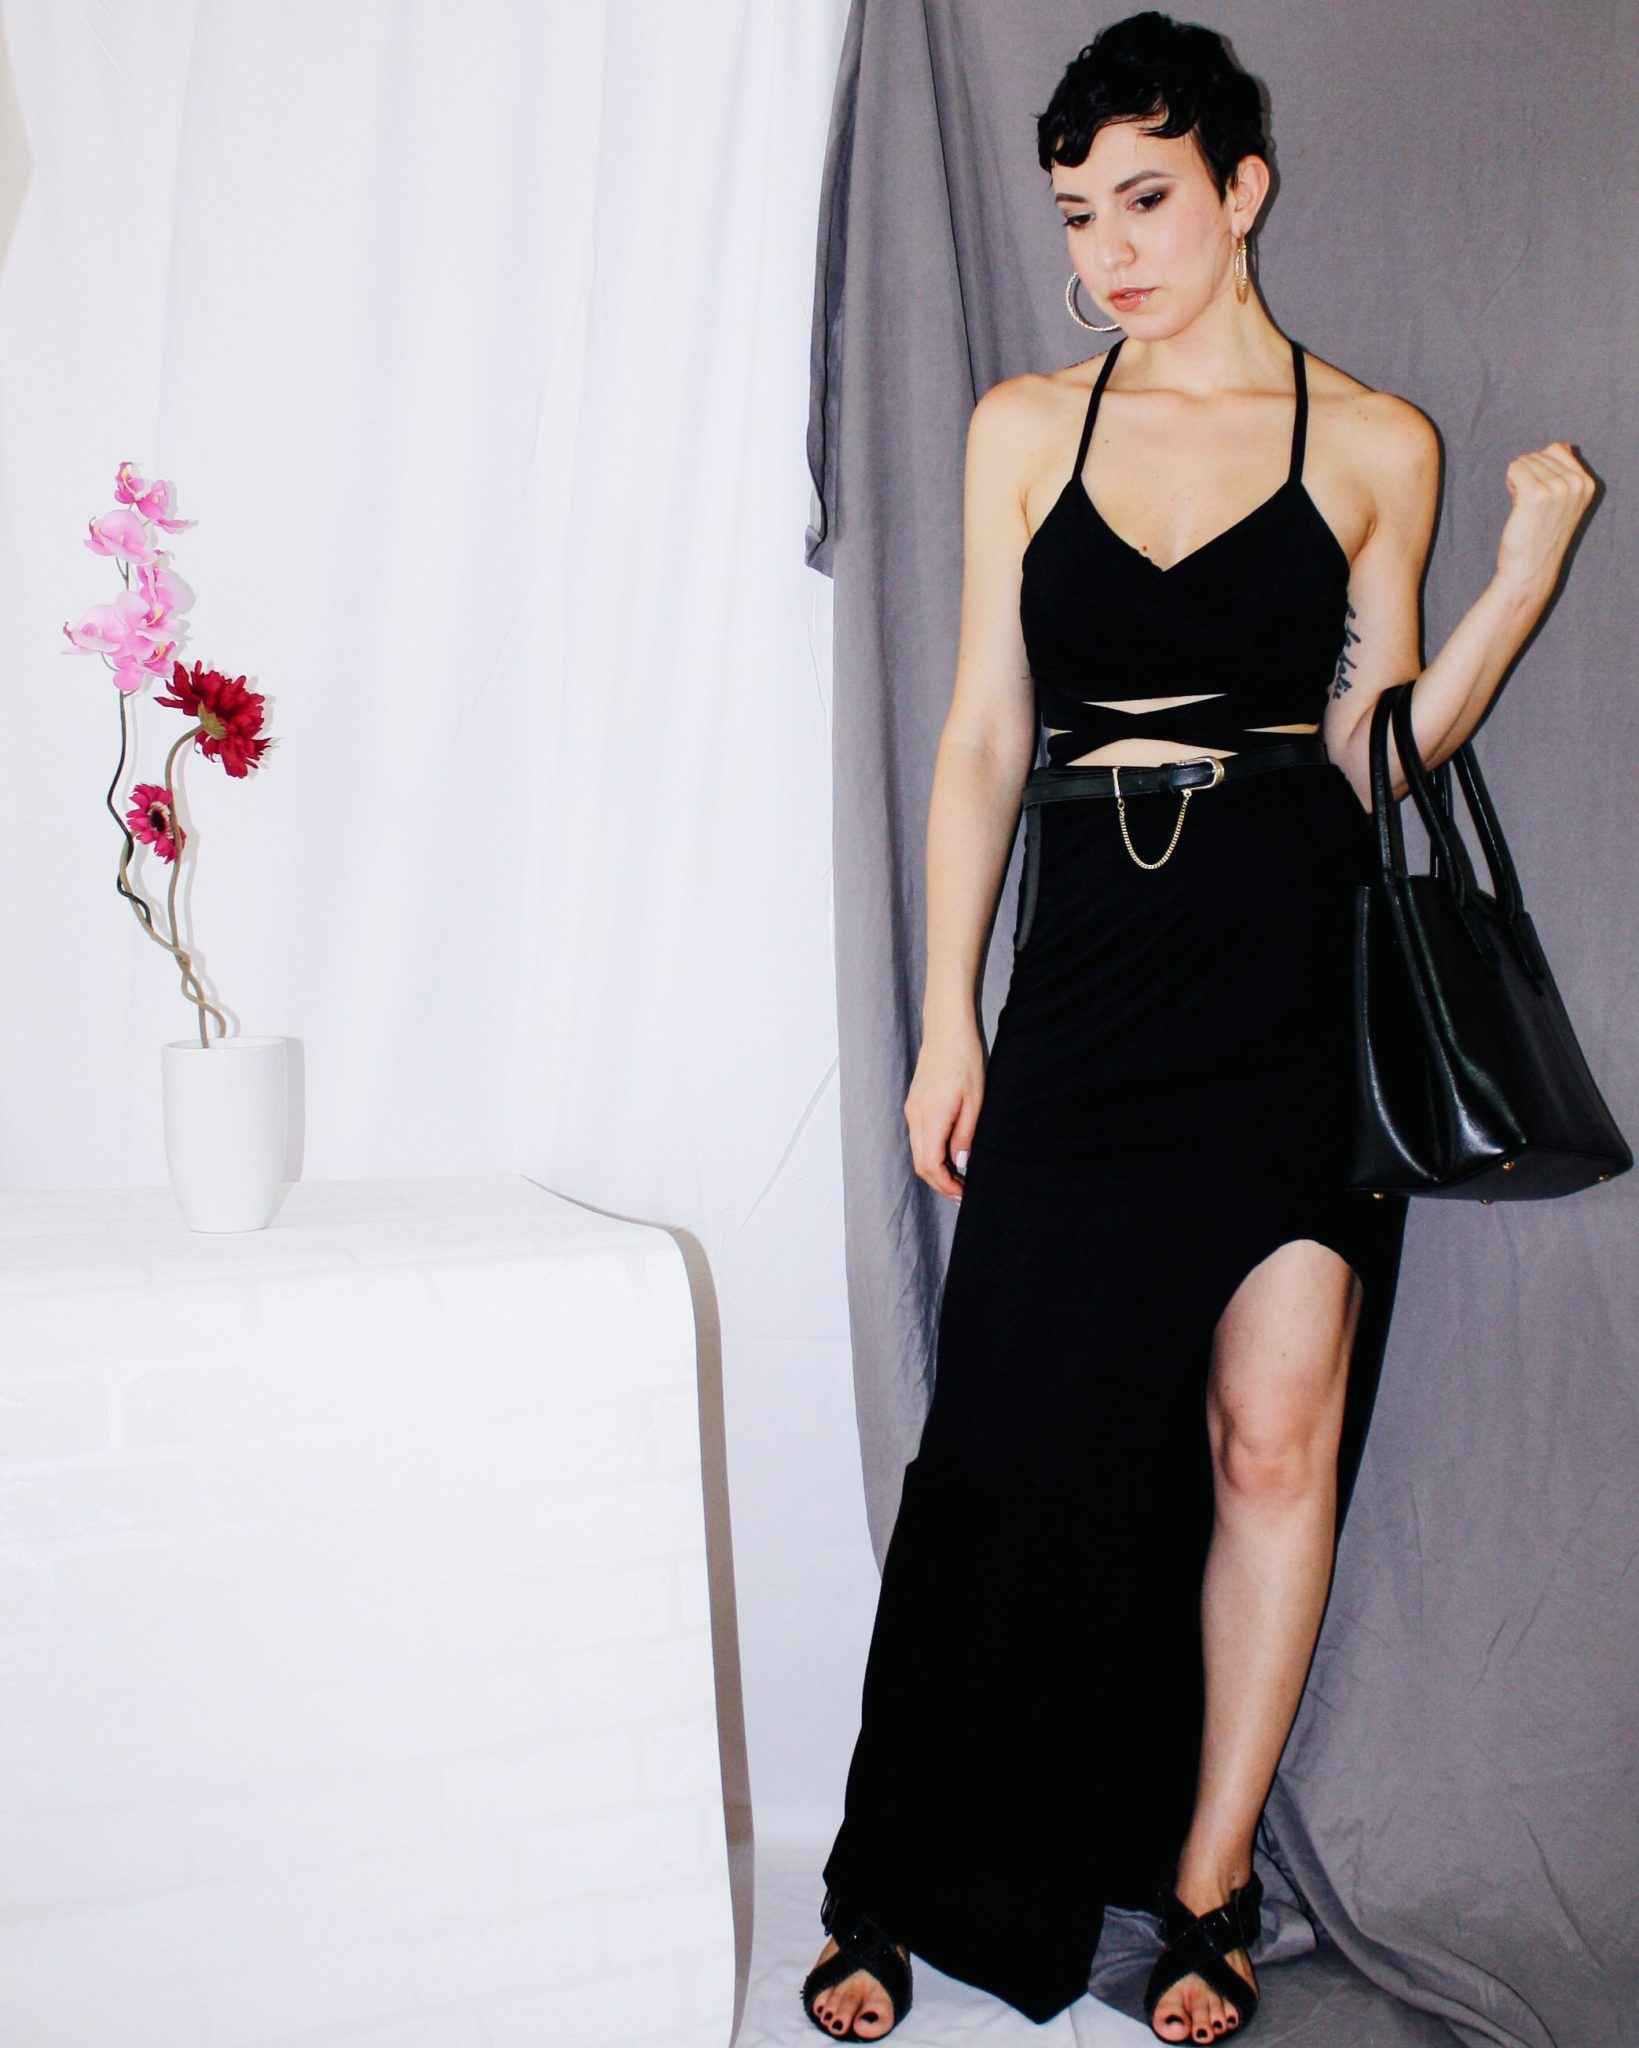 michael kors summer beach vibes all black resort 2018 long skirt crop top wraparound givenchy sandals leather 5